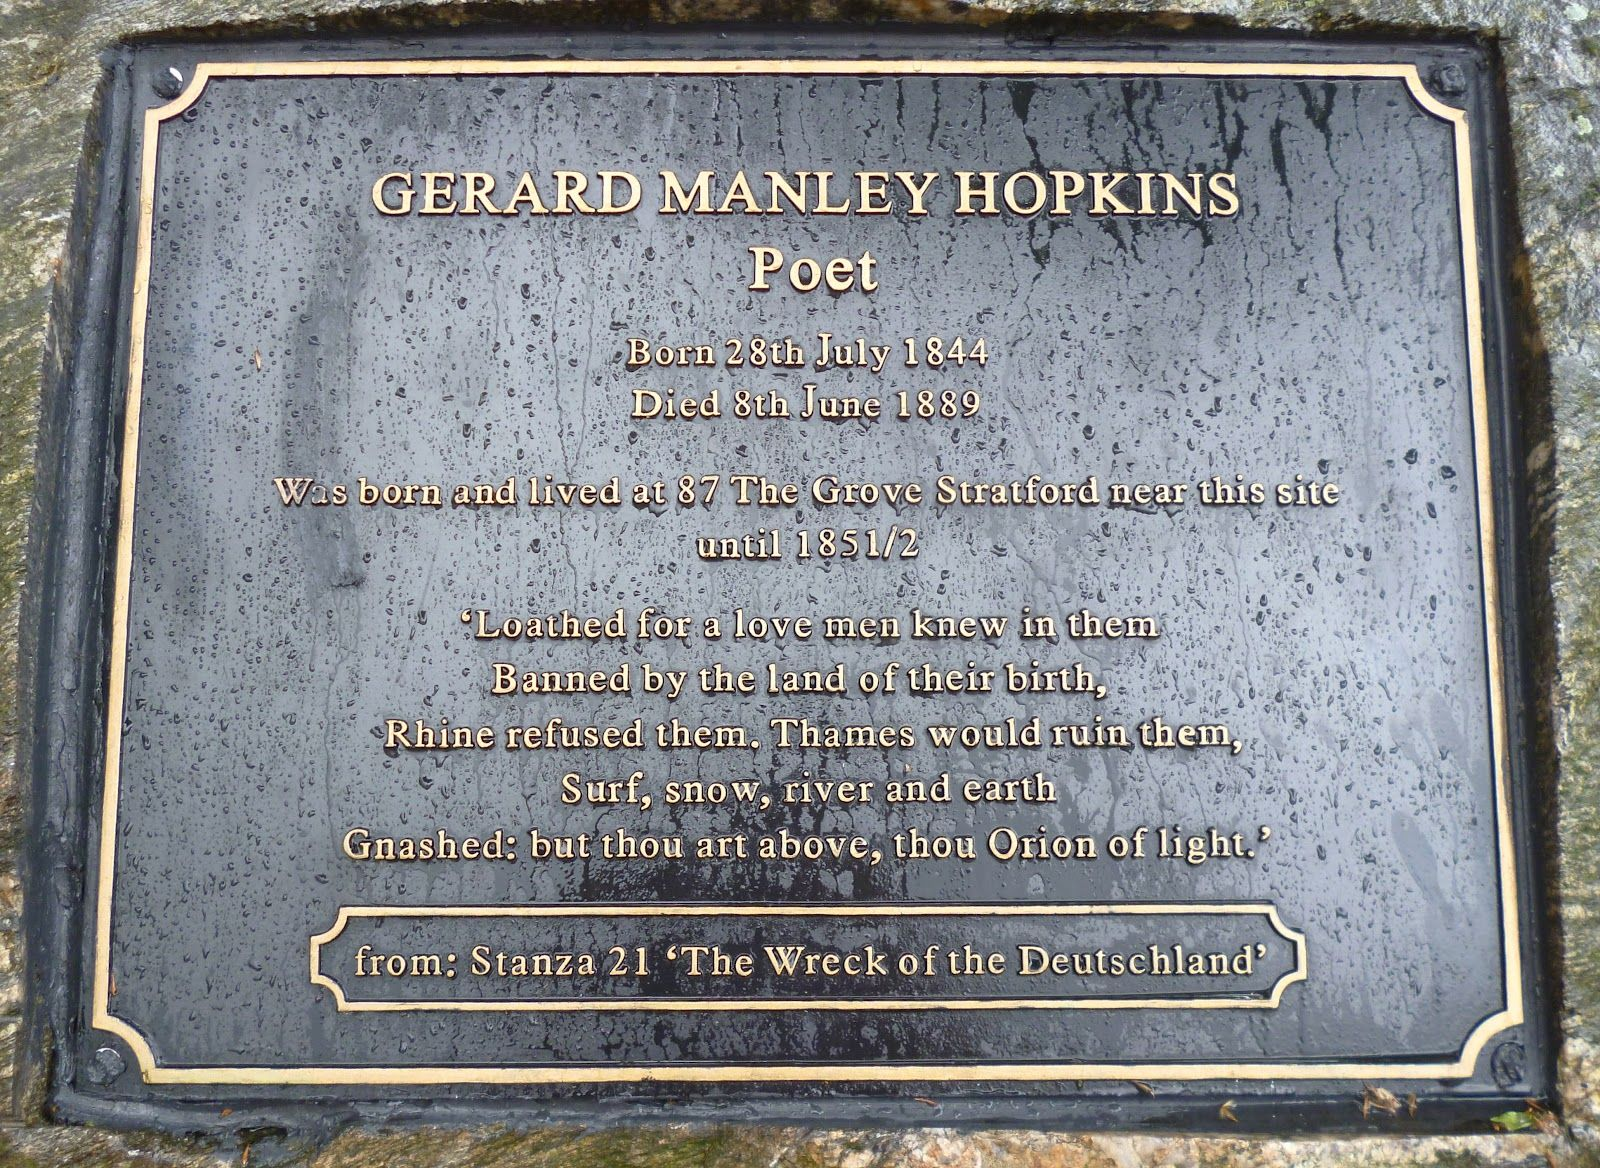 Gerard Manley Hopkins' grave.